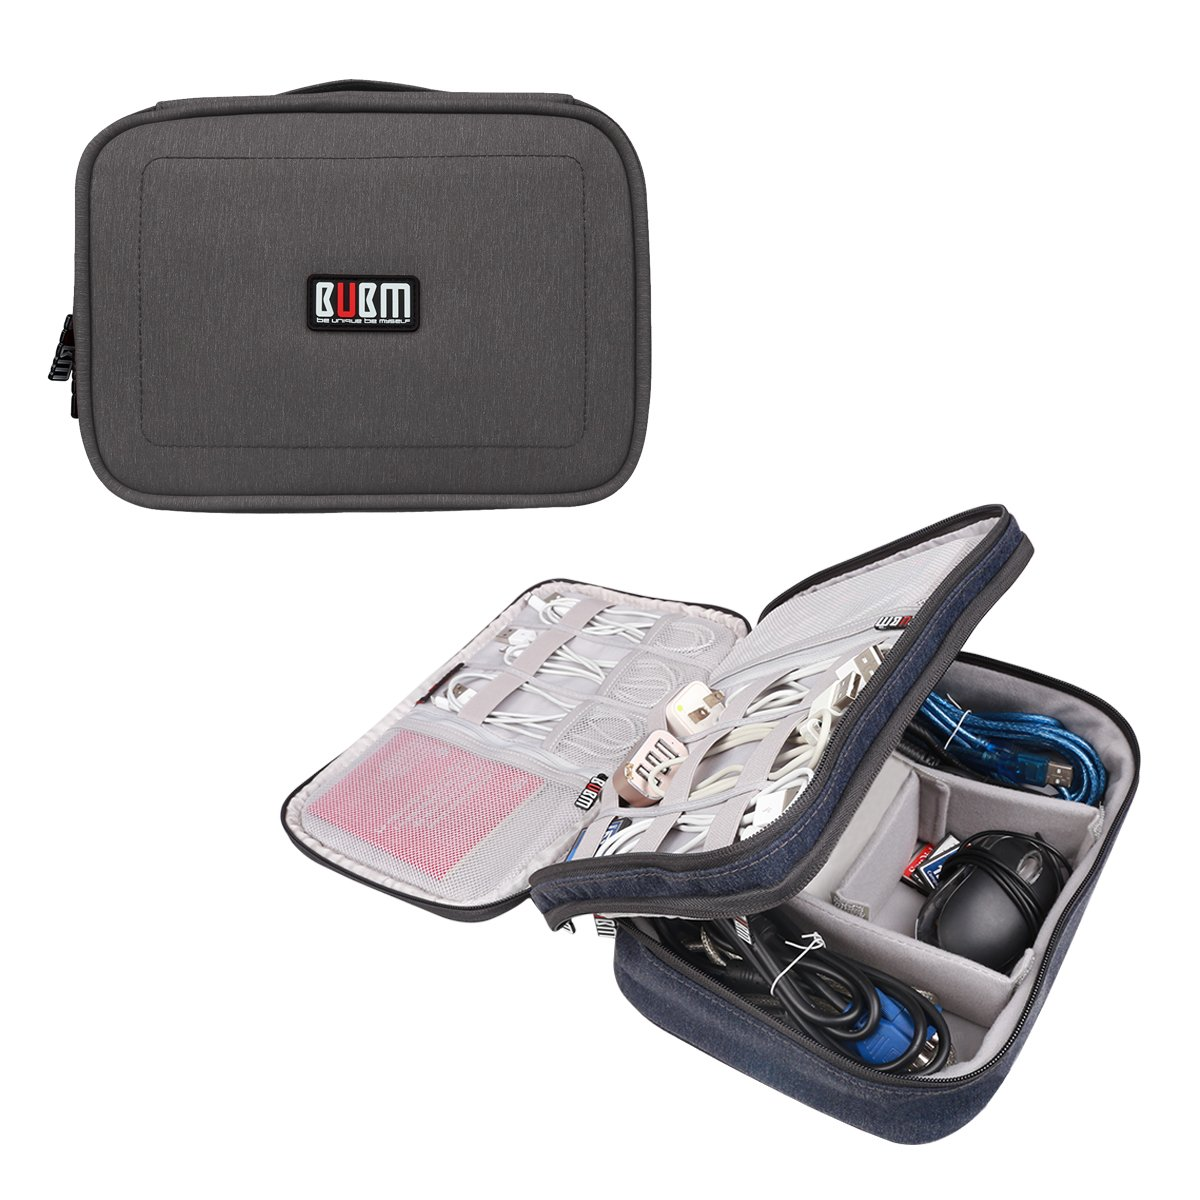 Universal Electronics Accessories Travel Organizer Cable Bag Blue Small BUBM